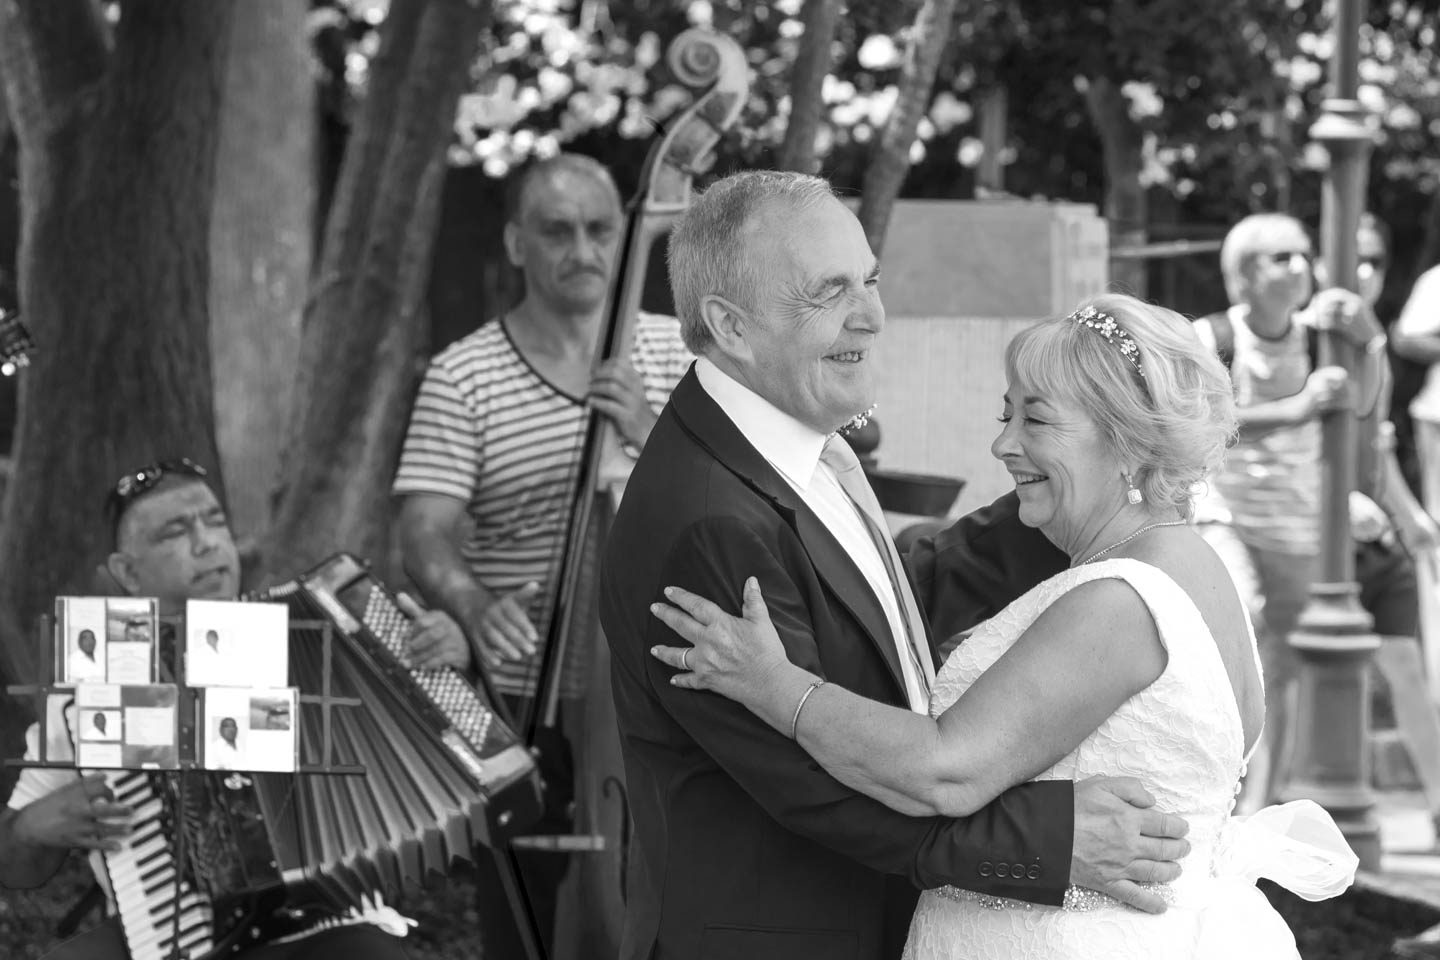 FineArt_Studio_Wedding_Sorrento_Neil&Sue_Villa_Comunale_Dancing_BW